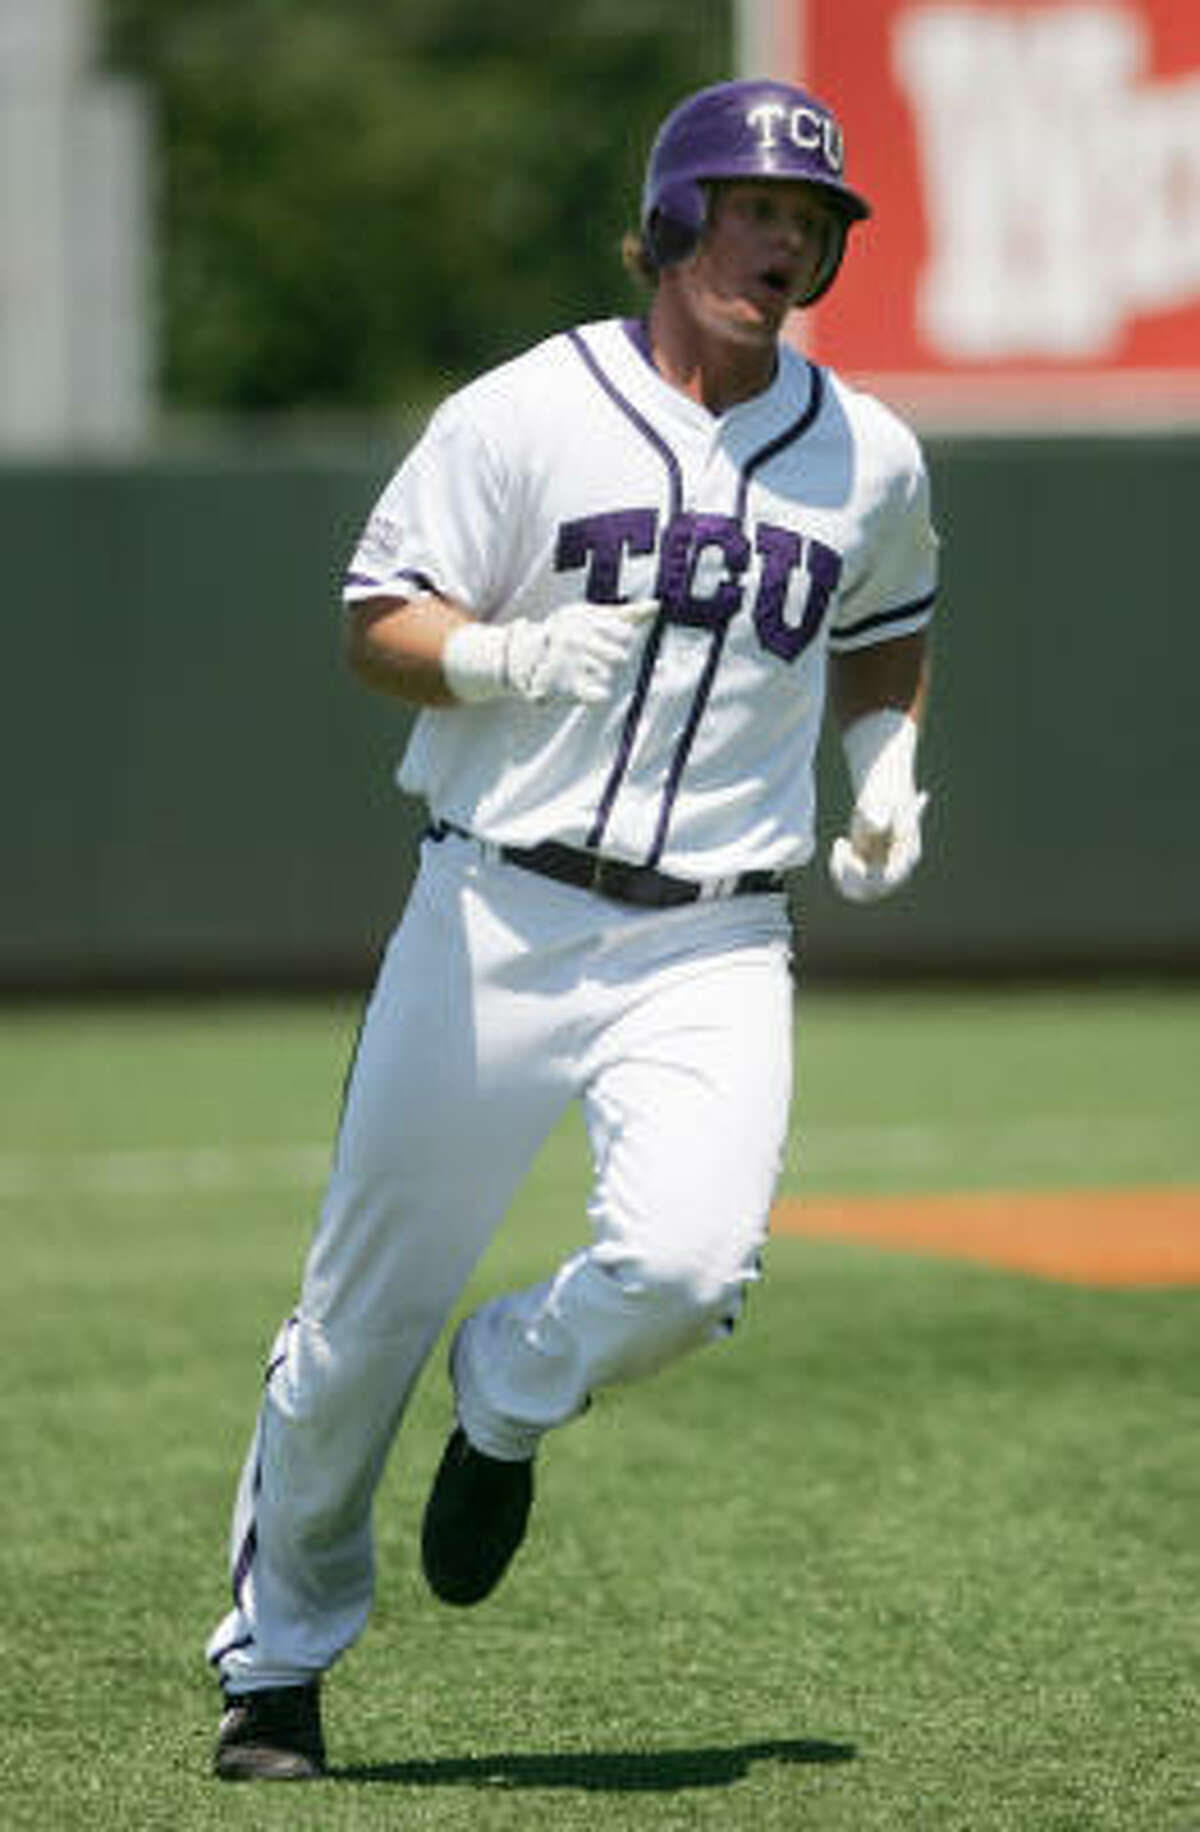 TCU's Matt Vern rounds second base after hitting a two-run home run in the fourth inning.